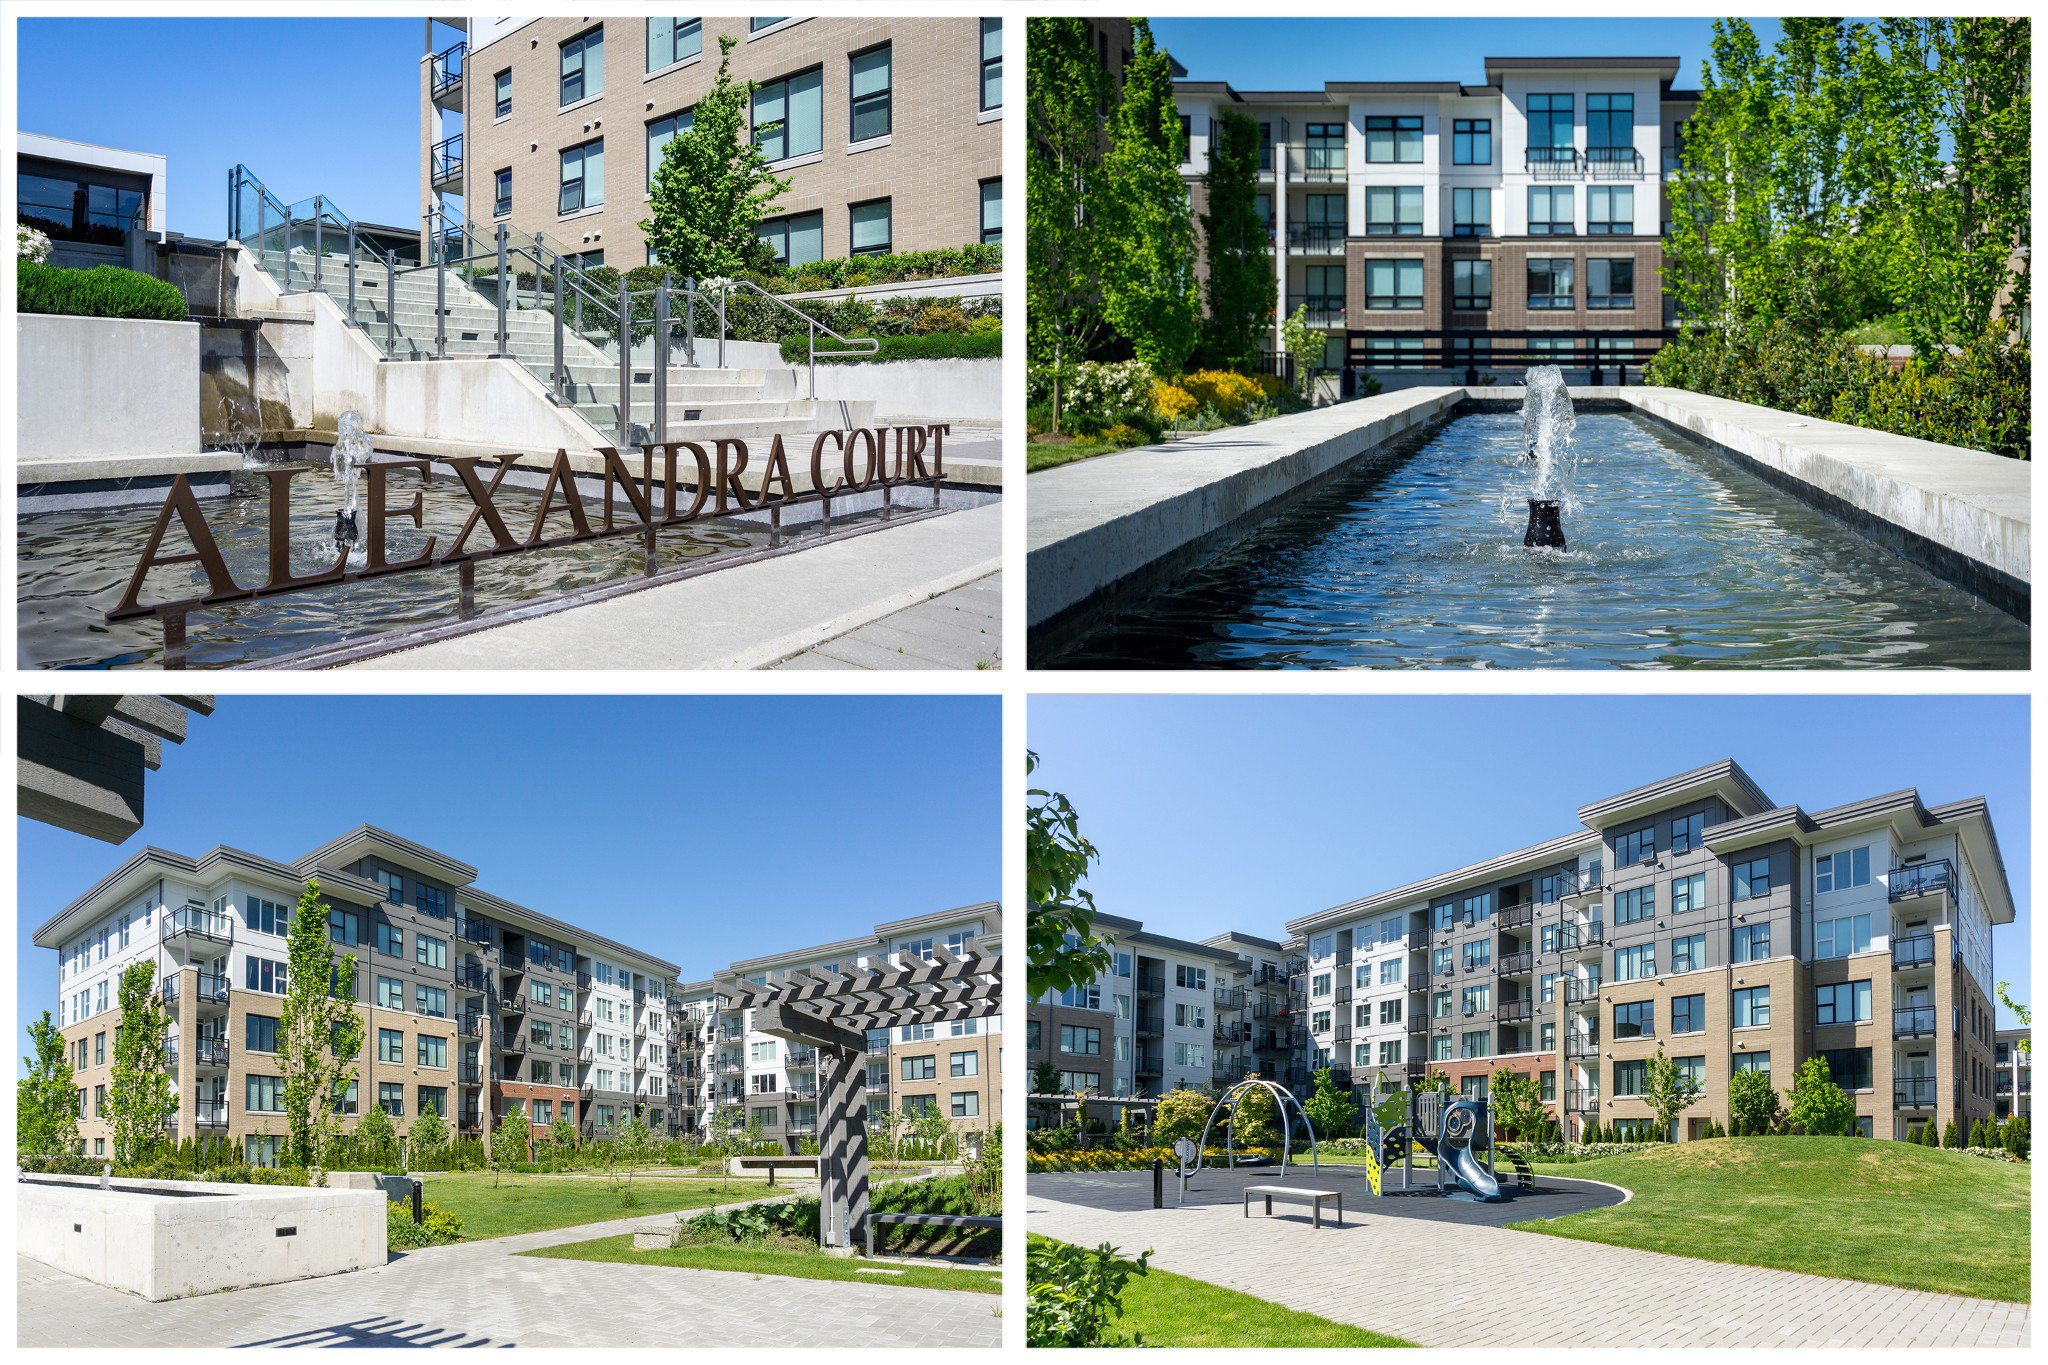 """Photo 44: Photos: 303 9311 ALEXANDRA Road in Richmond: West Cambie Condo for sale in """"ALEXANDRA COURT"""" : MLS®# R2347629"""